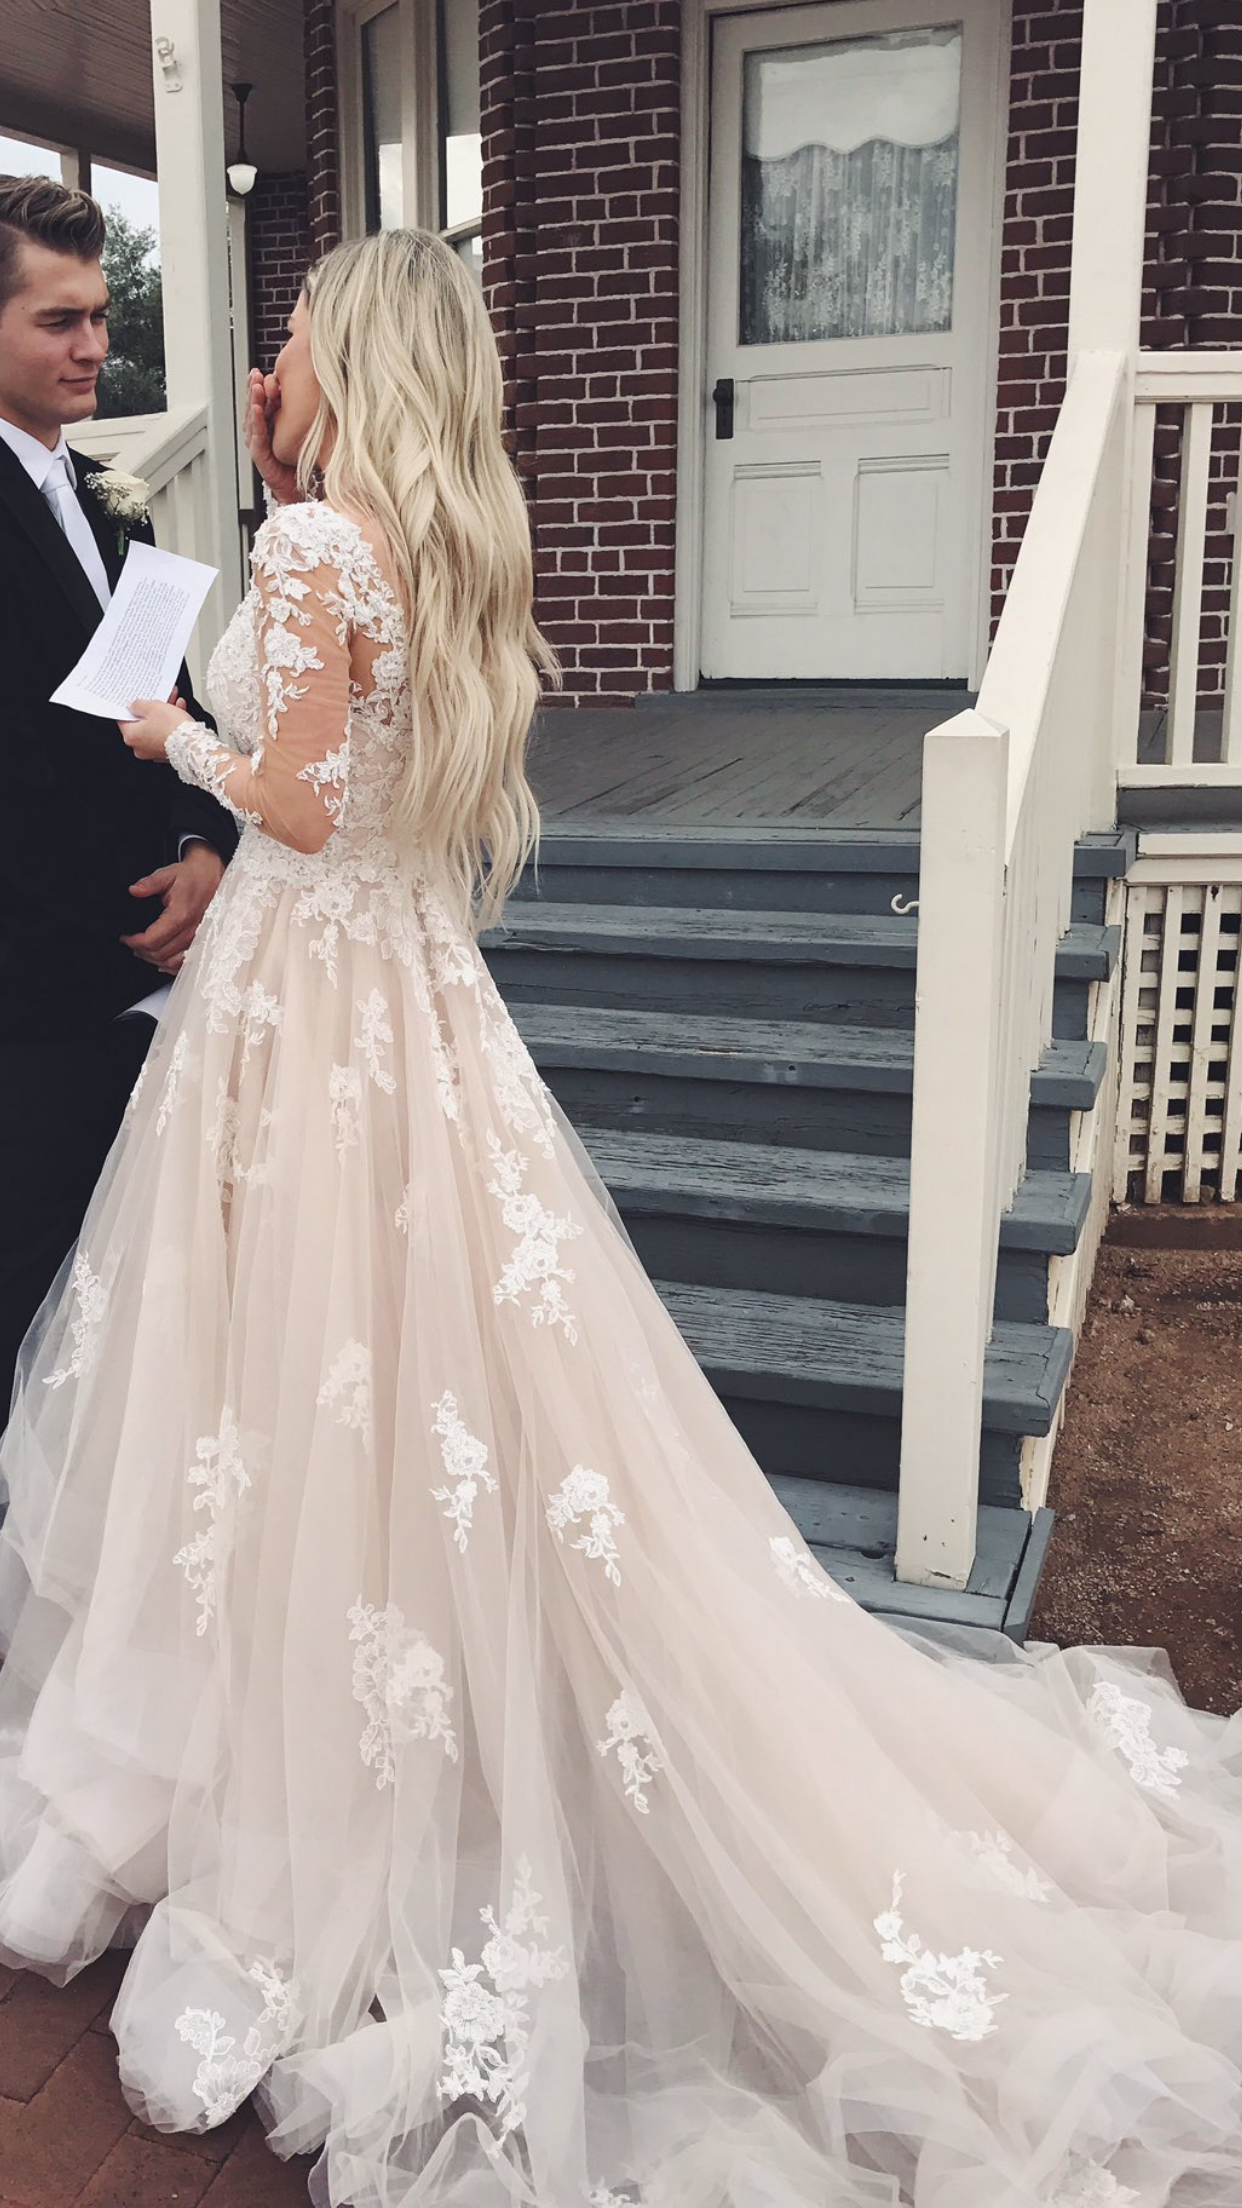 Pin By Hailey Helquist On Happily Ever After Champagne Wedding Dress Lace Bridal Dresses Wedding Dress Long Sleeve [ 2208 x 1242 Pixel ]